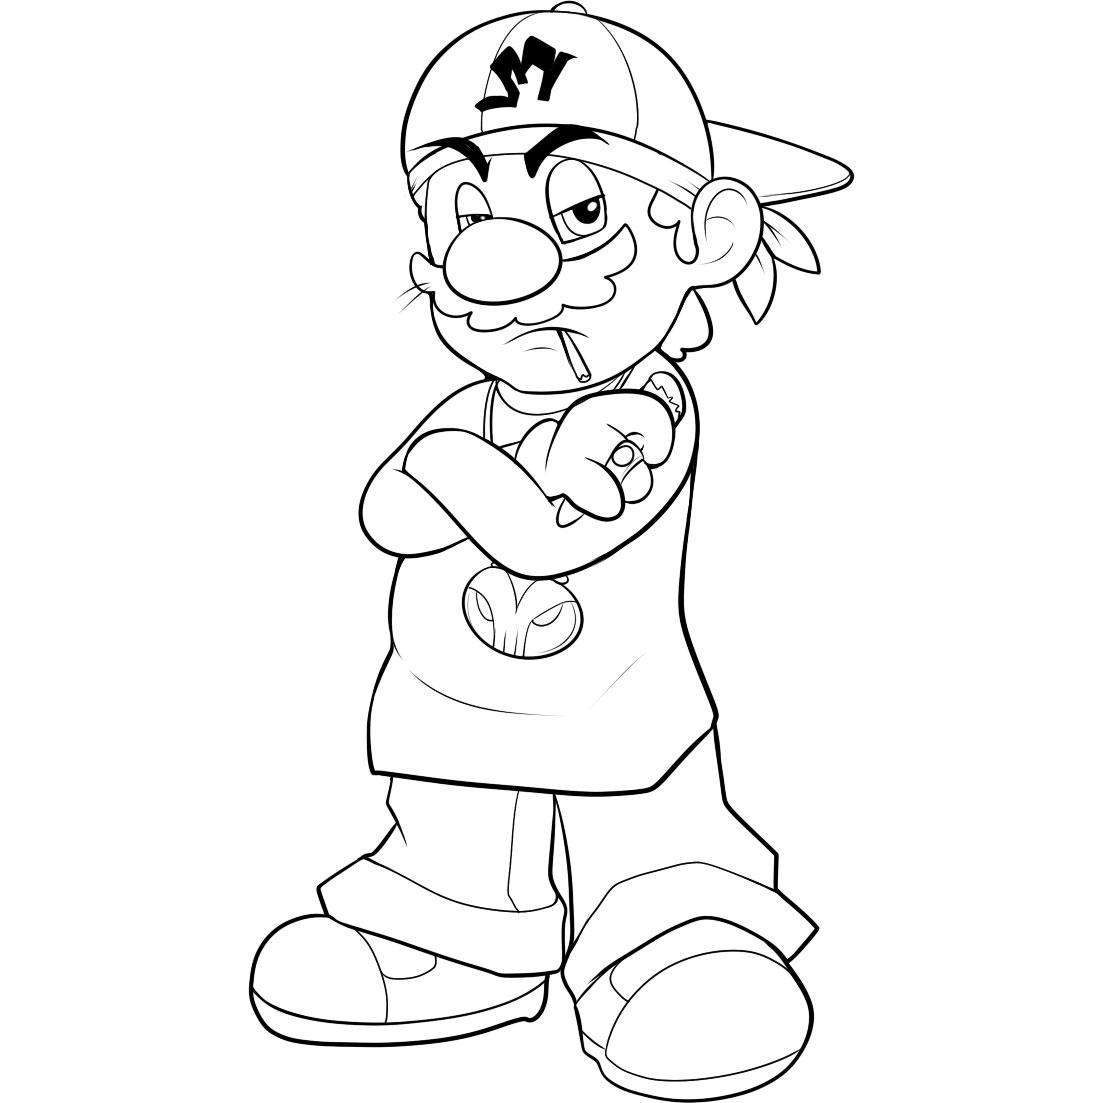 mario brother coloring pages - All Coloring Pages